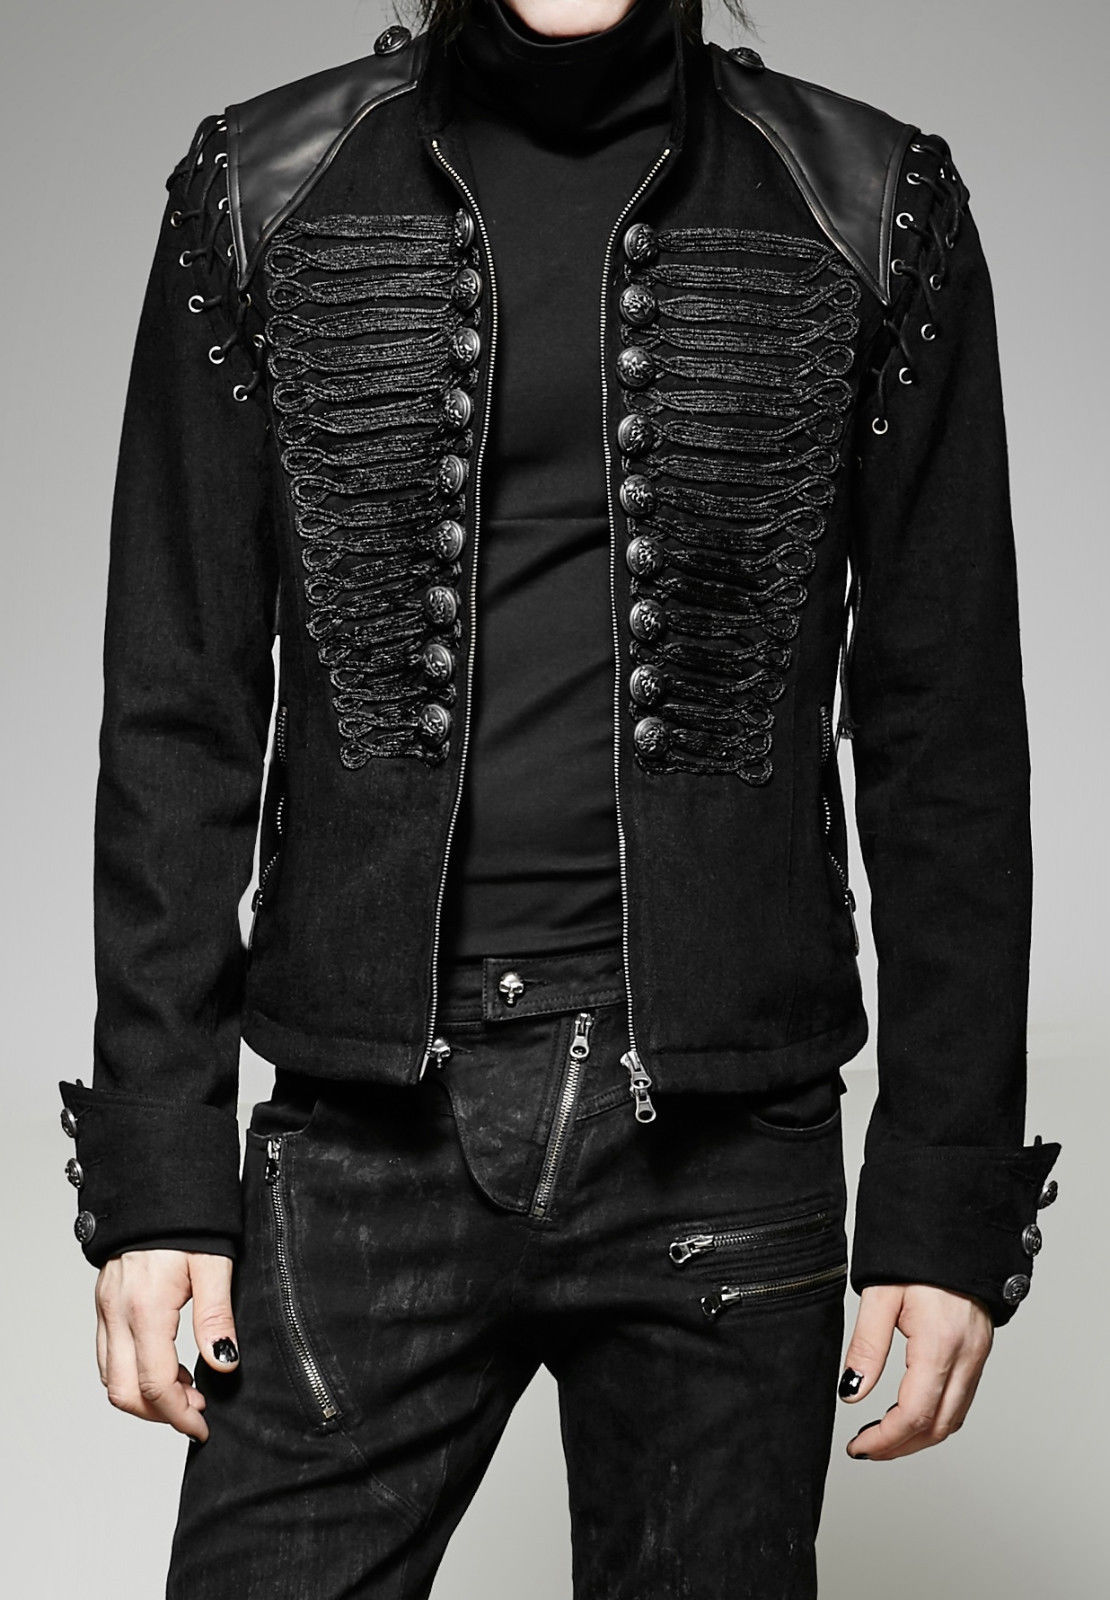 rebelsmarket_punk_rave_mens_steampunk_gothic_rock_metal_military_short_black_army_jacke_jackets_7.jpg